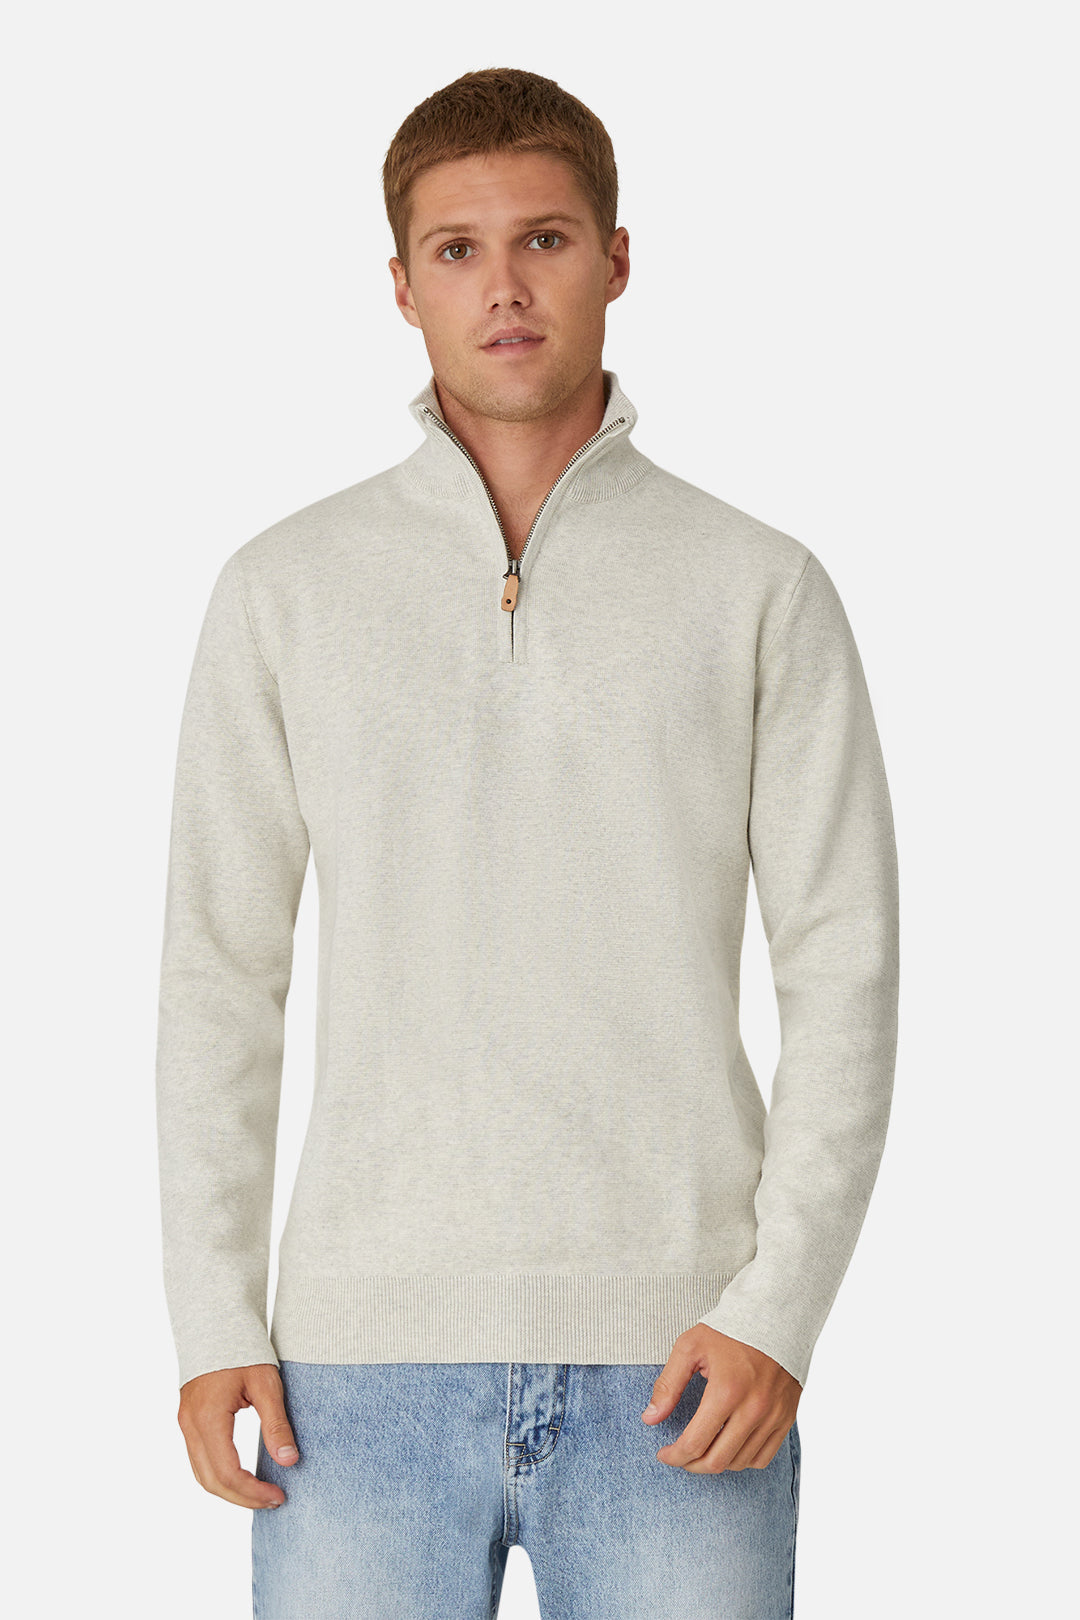 The Lakewood Zip Neck Knit - Oatmeal